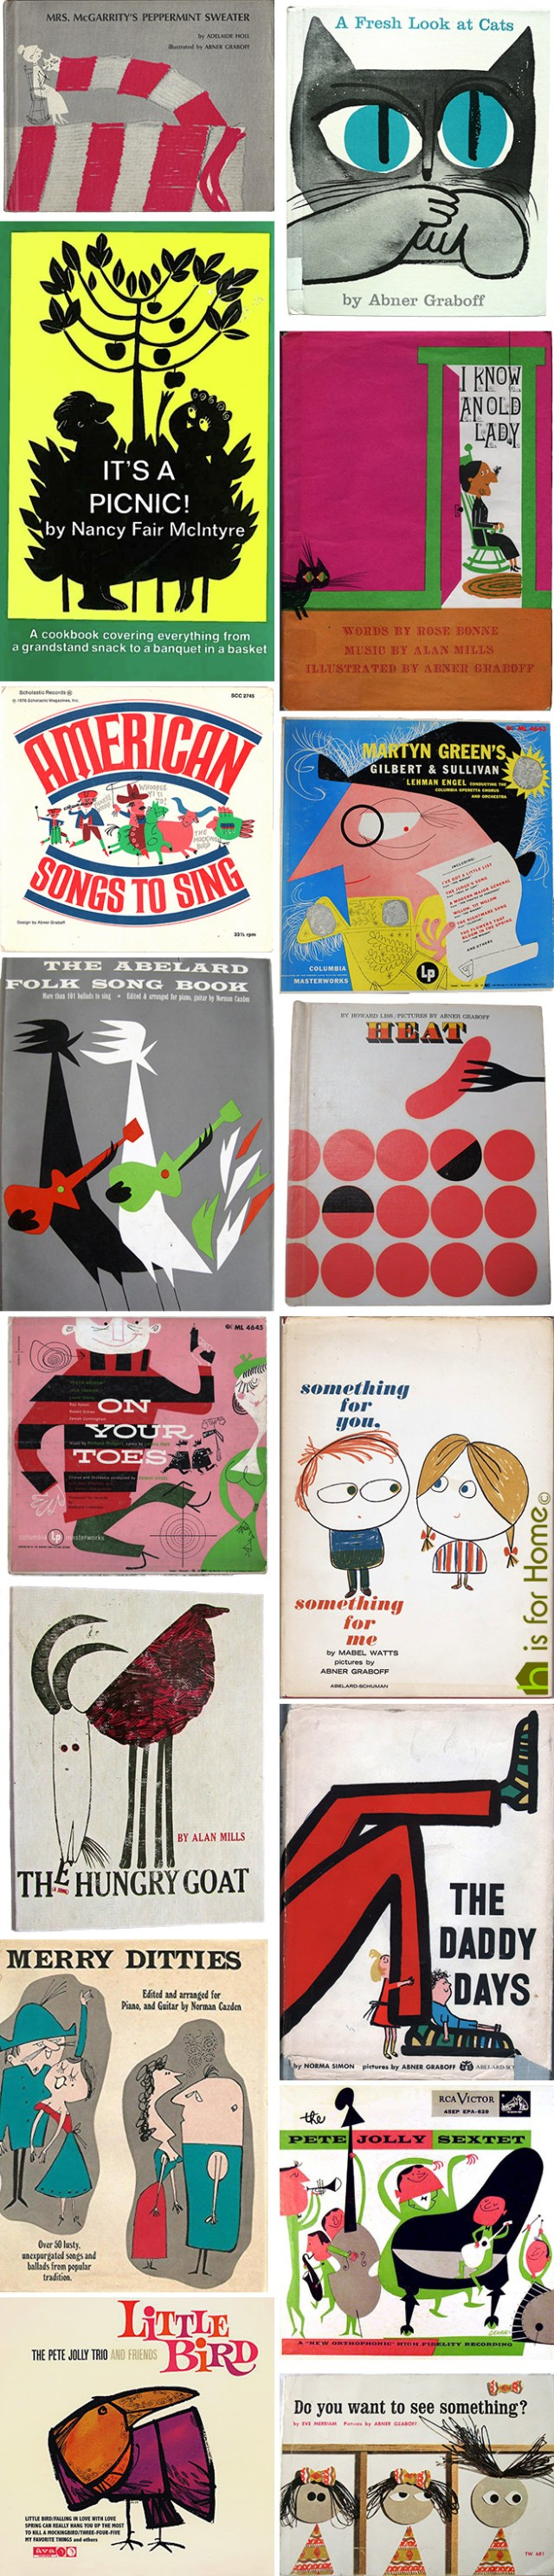 Mosaic of Abner Graboff illustrations | H is for Home